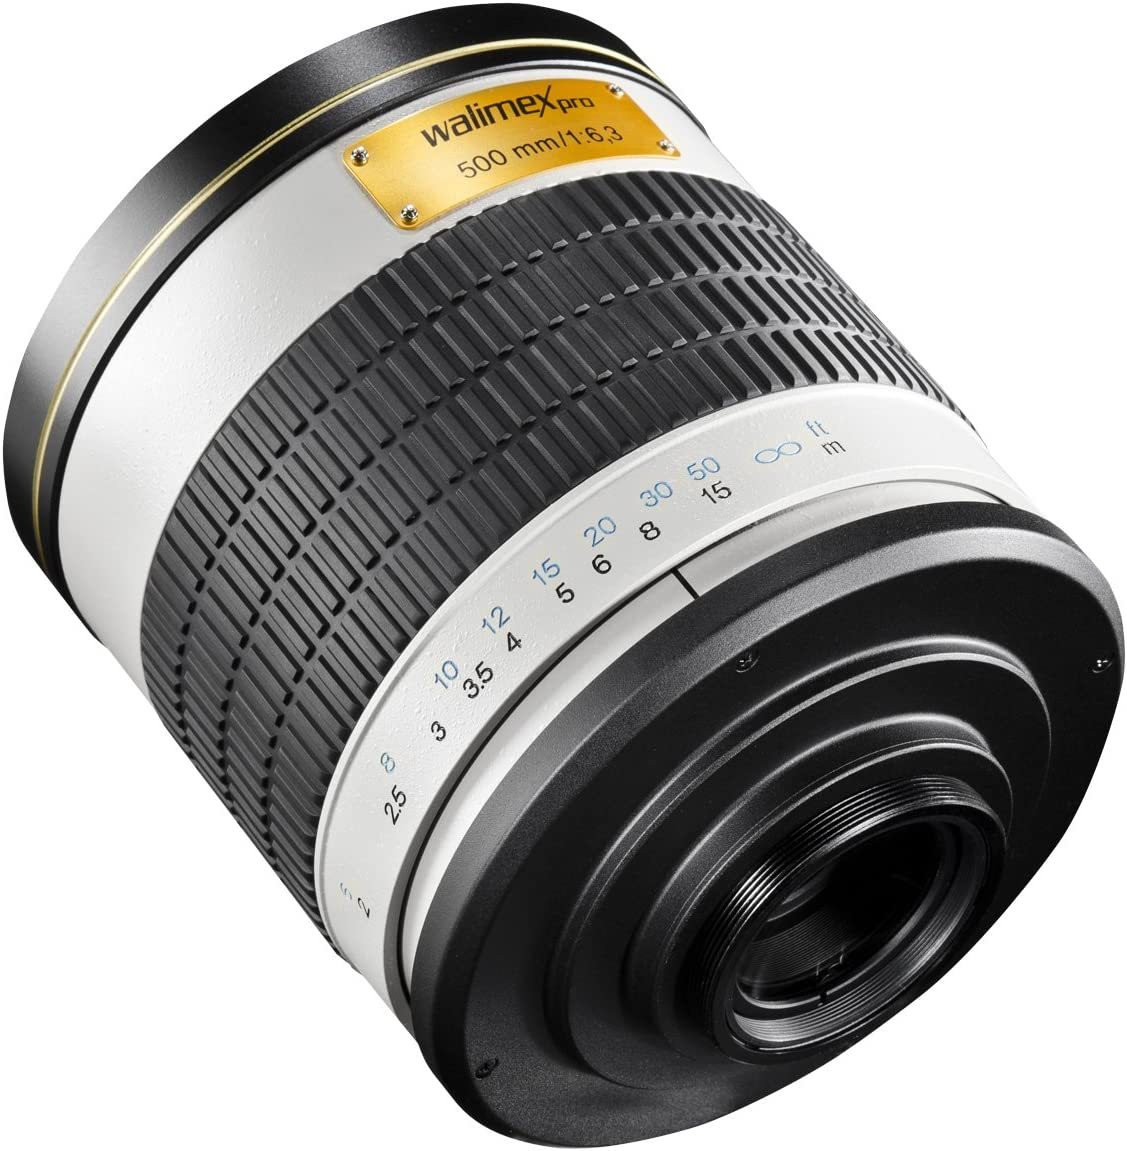 Walimex Pro 500mm F 6 3 Dx Tele Mirror Lens For Olympus Camera Photo